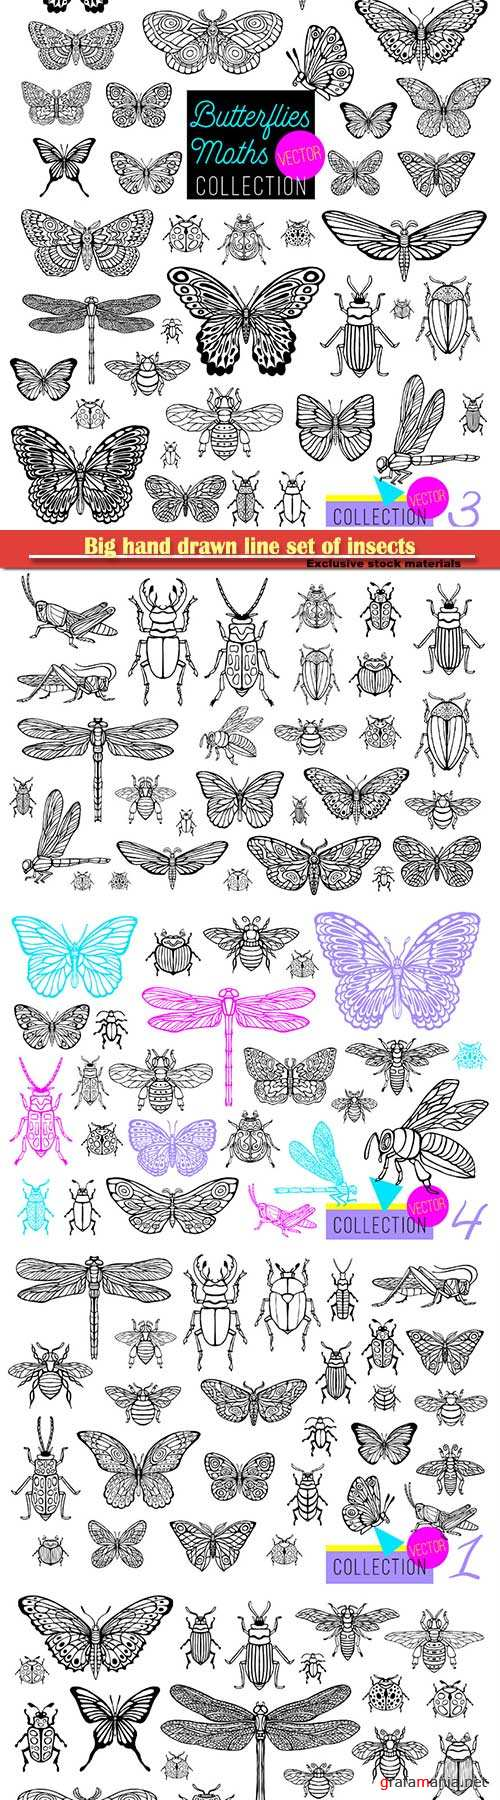 Big hand drawn line set of insects, beetles, honey bees, butterfly moth, bumblebee, wasp, dragonfly, grasshopper